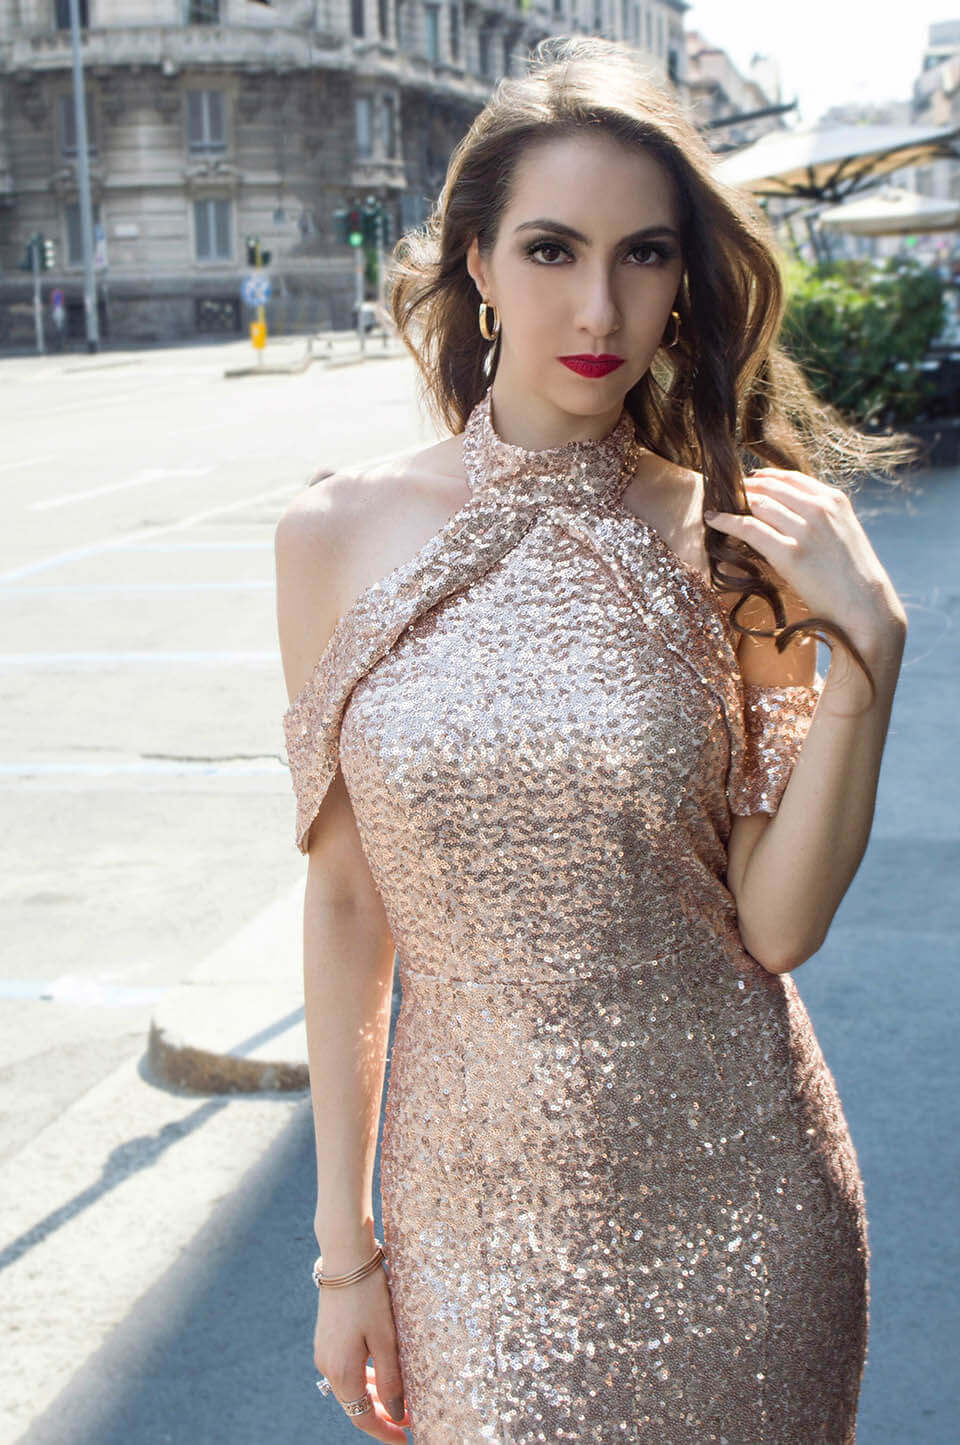 Maxi dress: sequins party dress